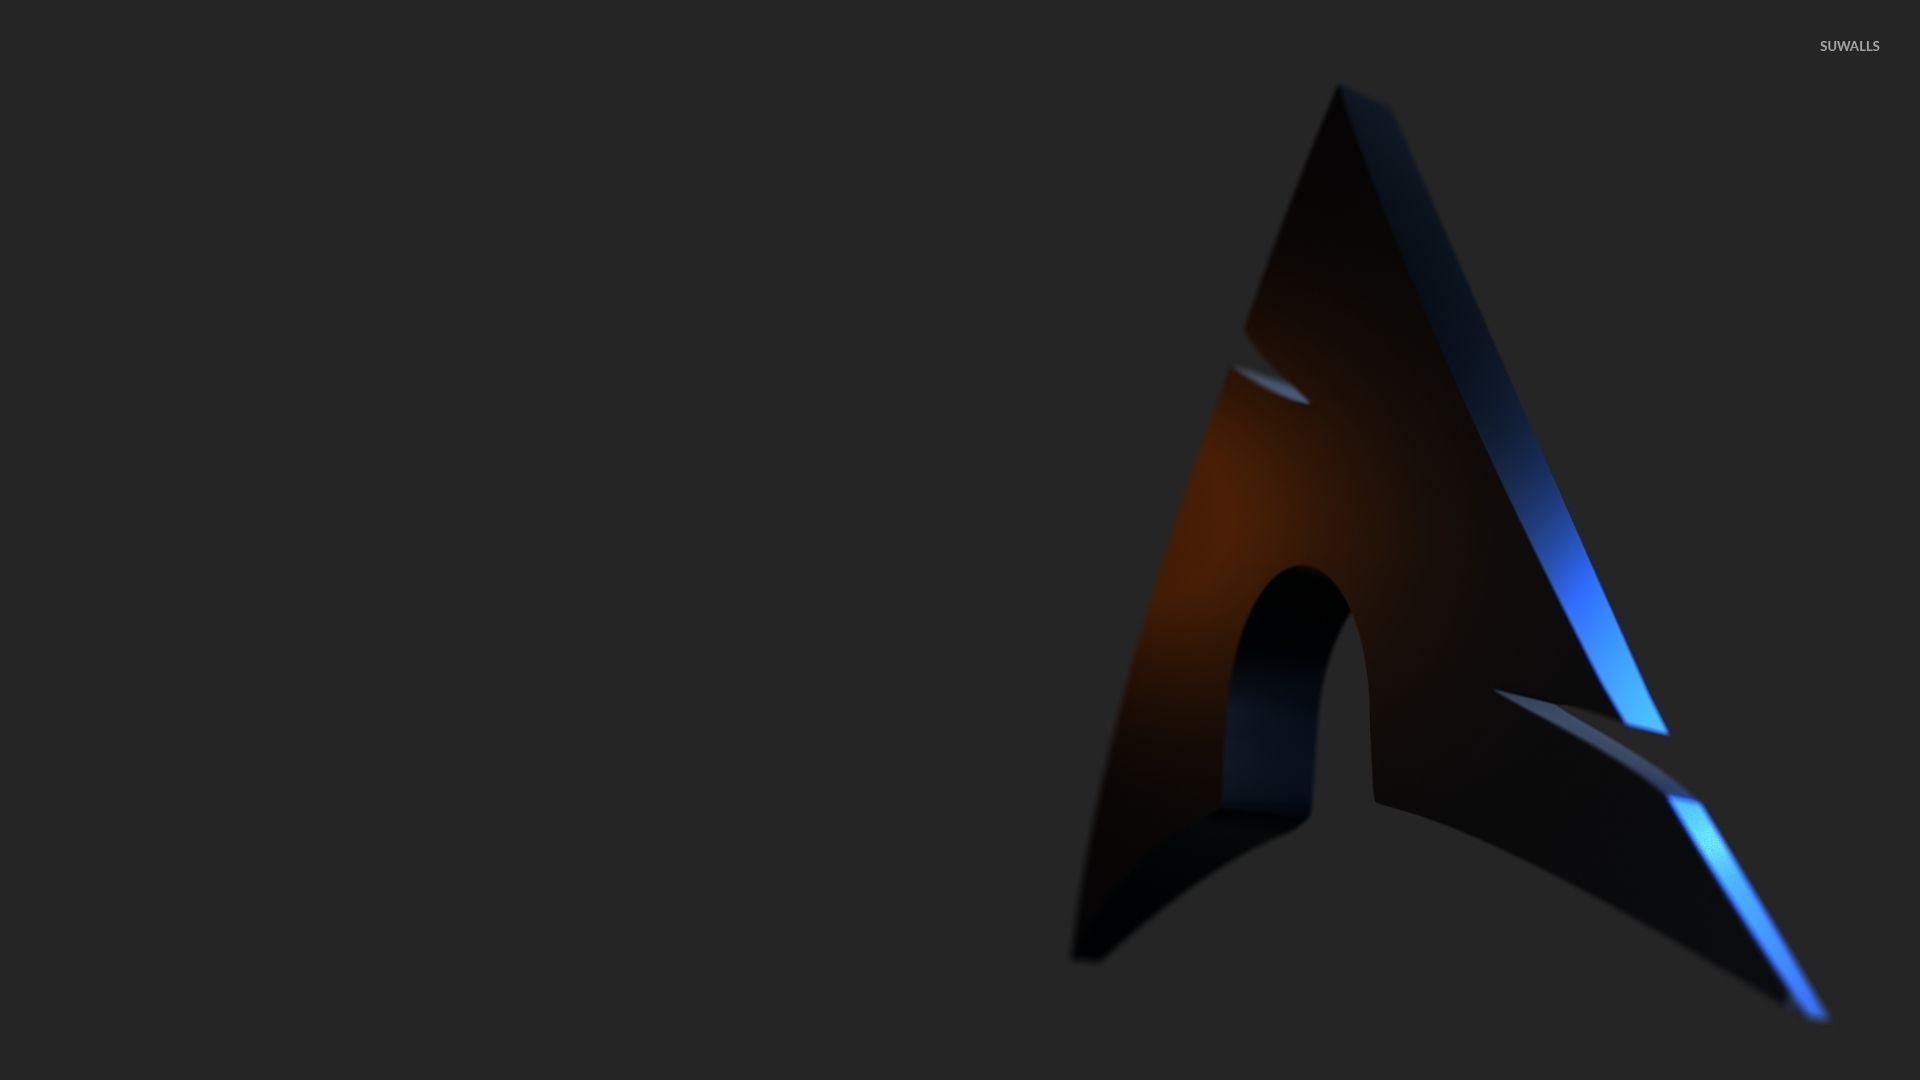 Arch Linux 6 Wallpaper